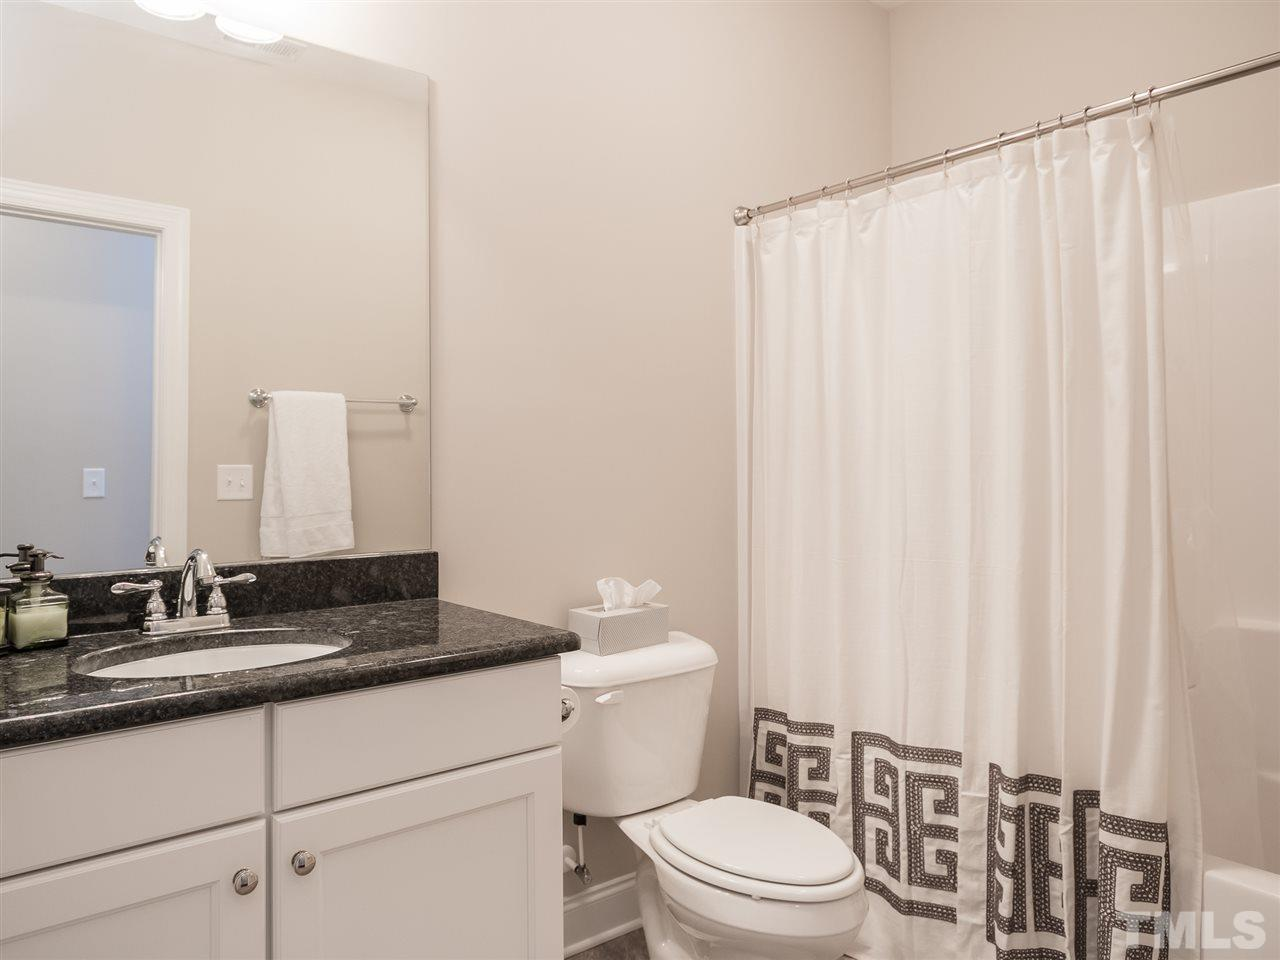 Guest bath with granite counter tops and tile floors.